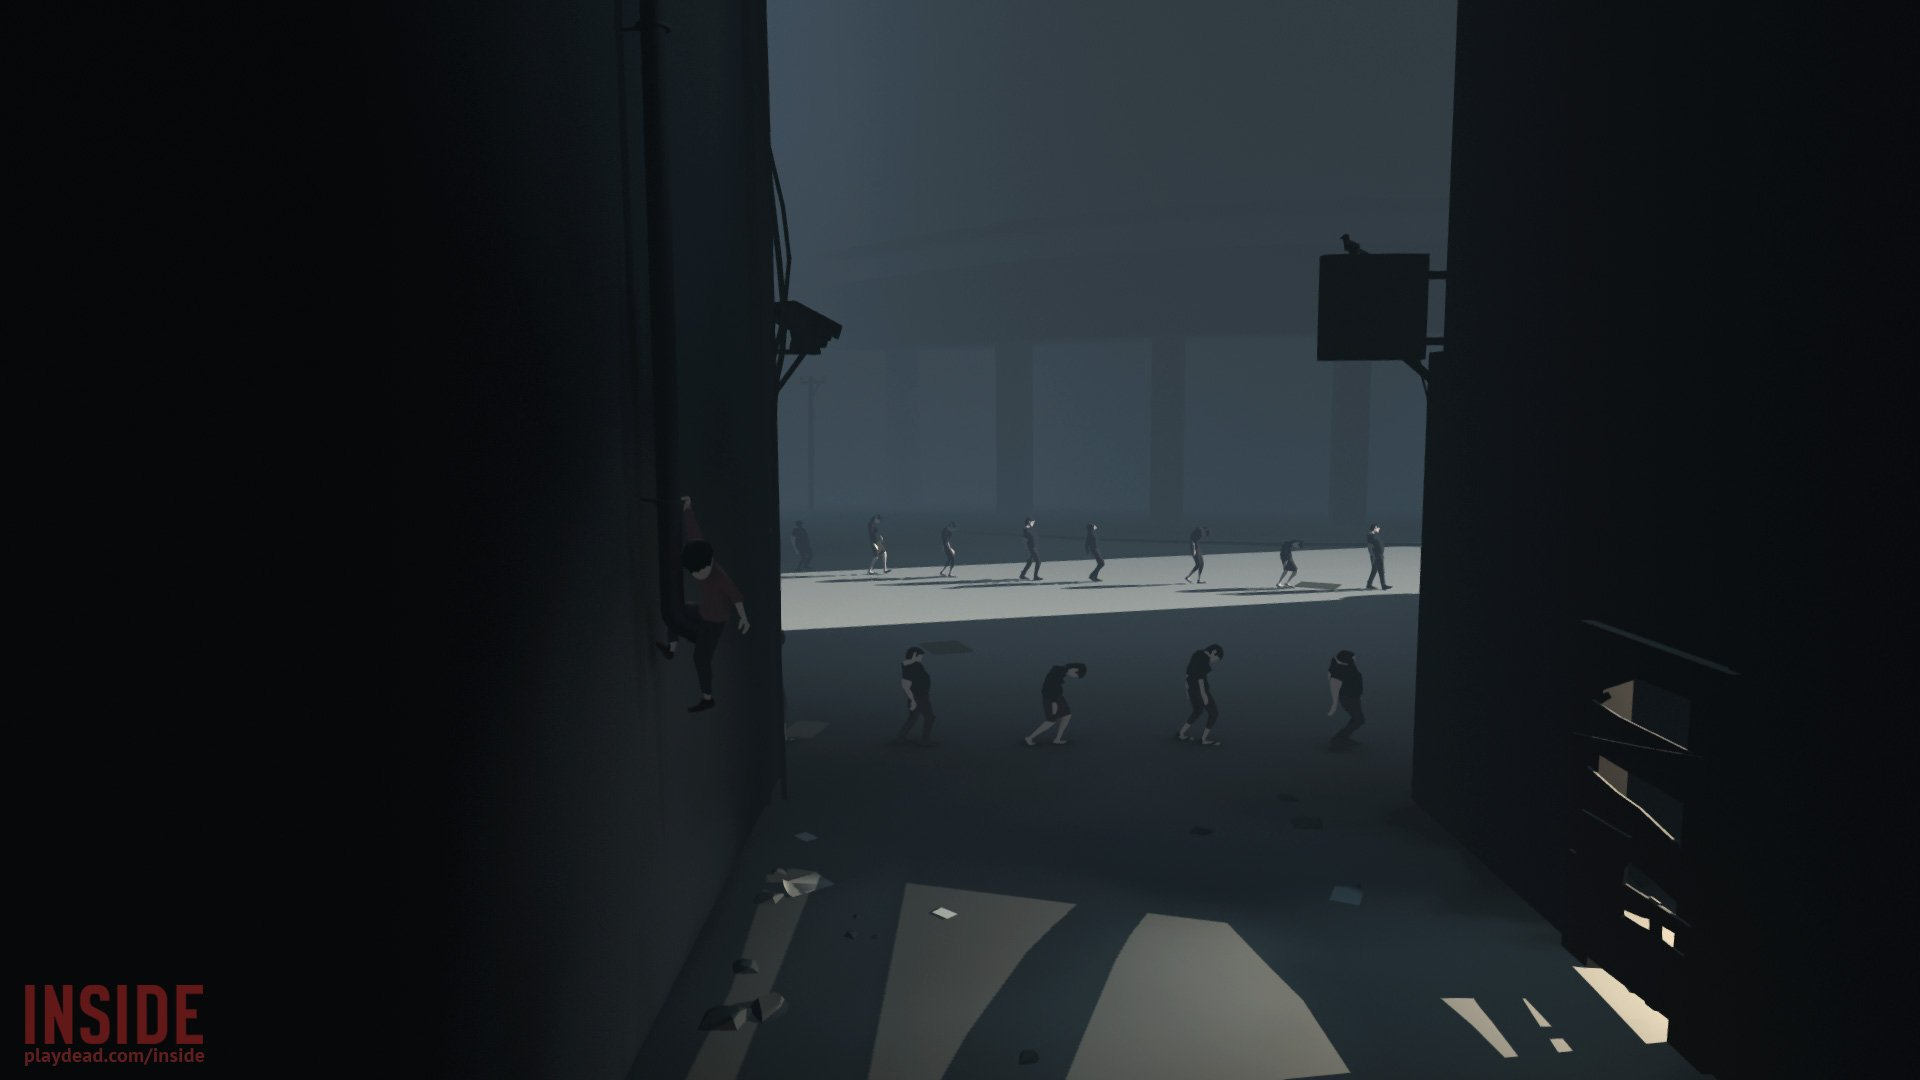 inside-game-zombie-kid-stealth-gameplay-screenshot-xbox-one